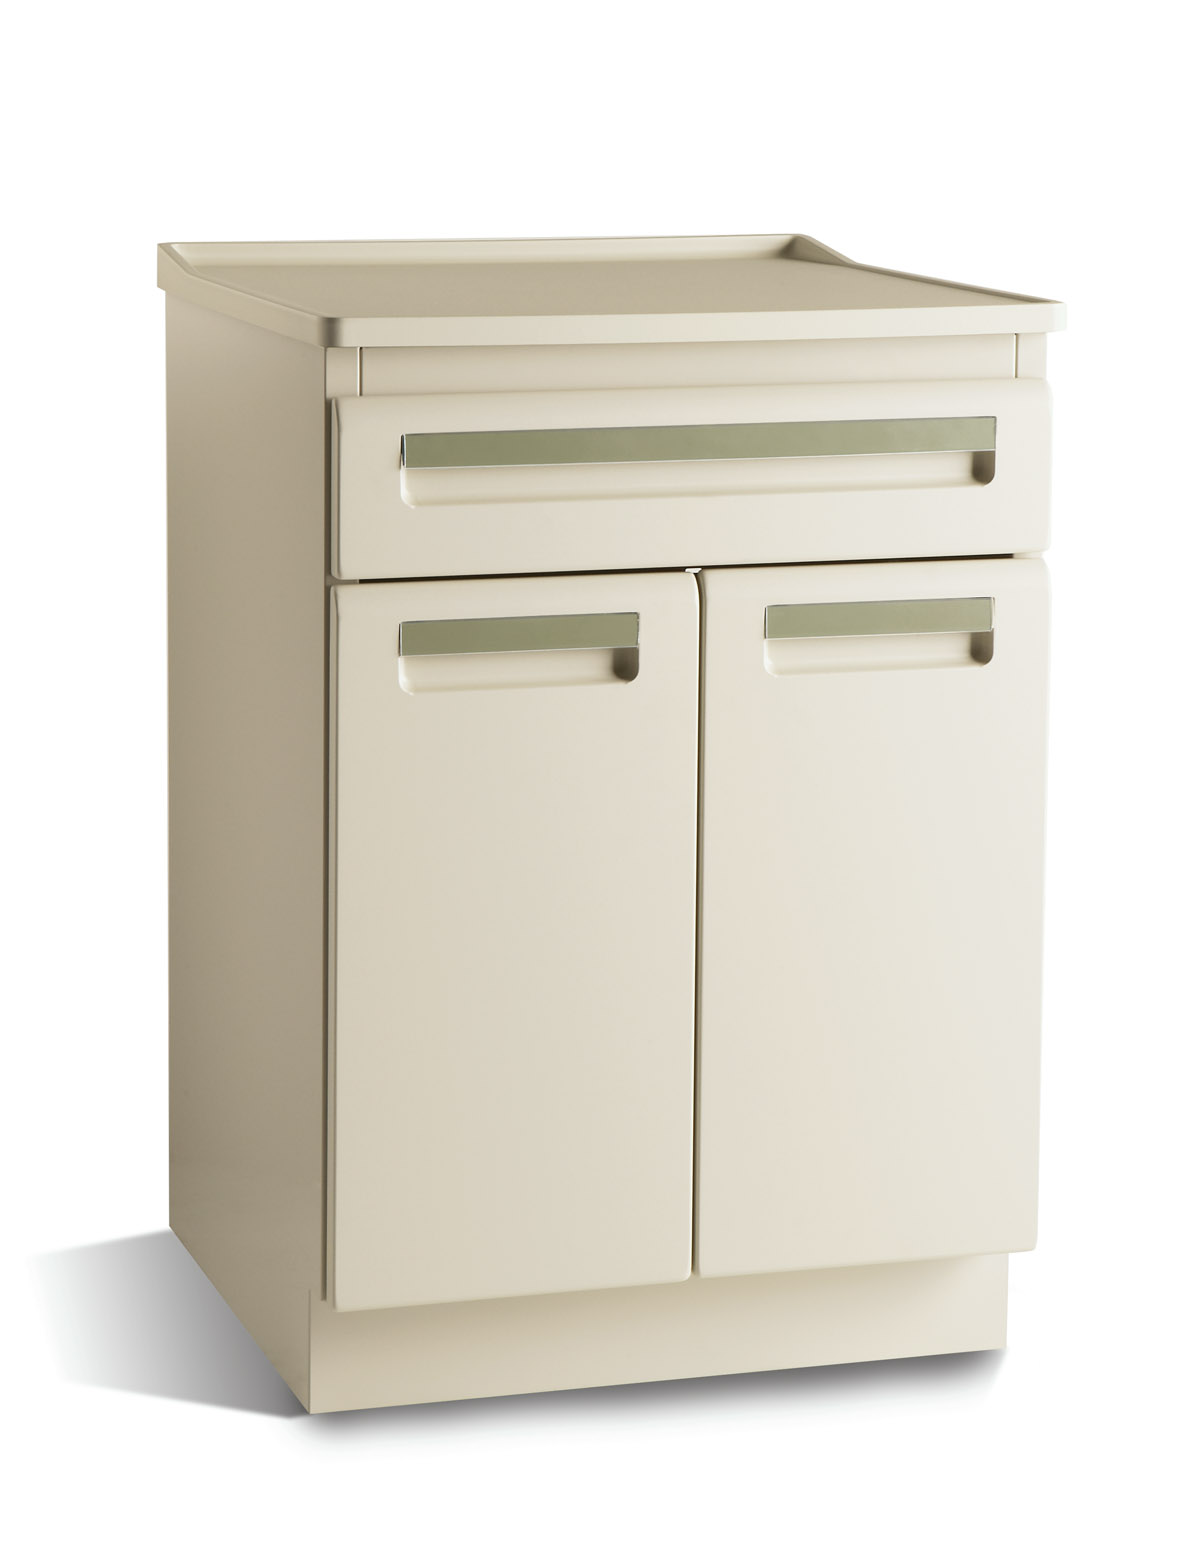 CABINET, TREATMENT, MIDMARK 6060, W/SHELF, SHIMMER